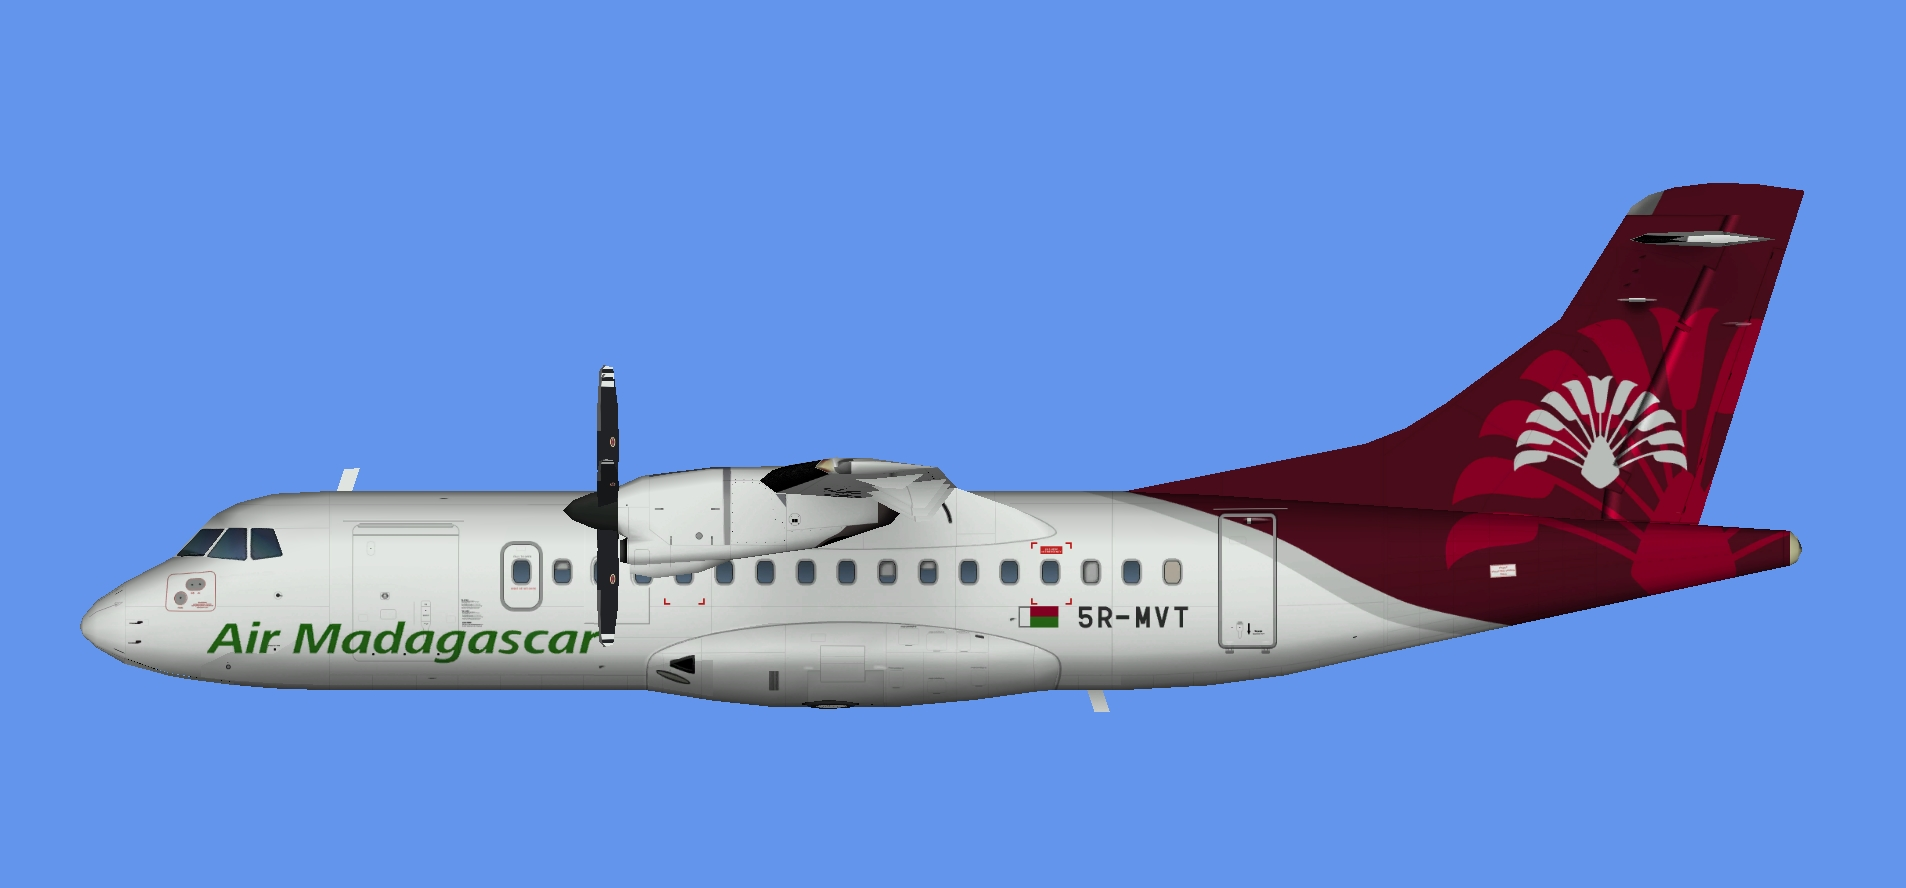 Air Madagascar ATR 42-300